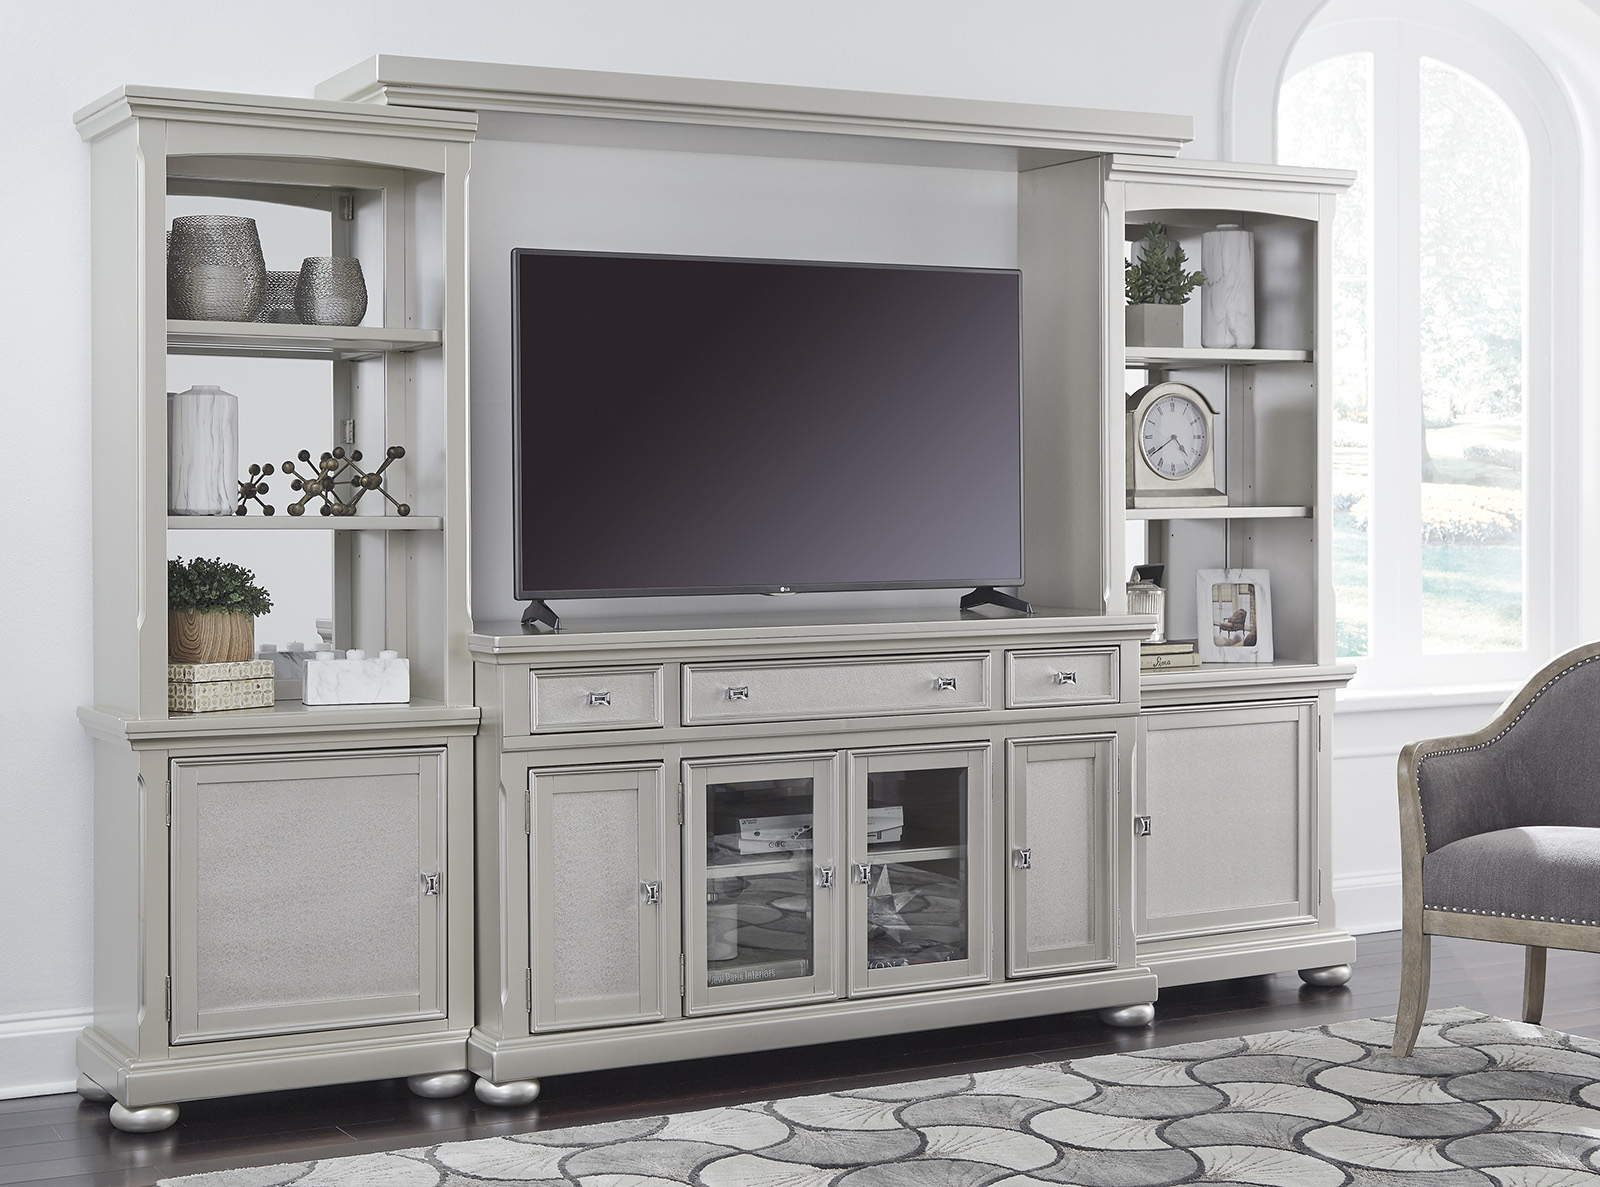 Coralayne Wall Entertainment Center In Silver